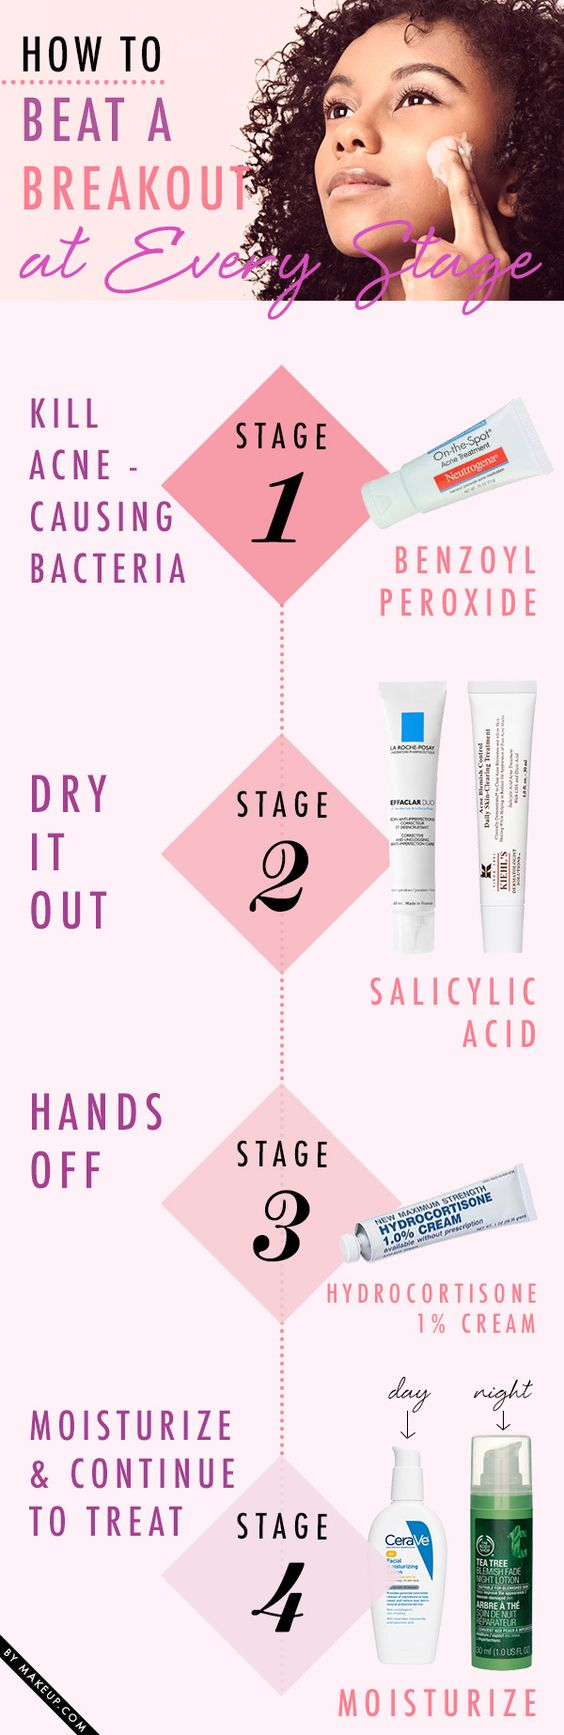 how to stop breakouts at every stage // every girl should read this!: